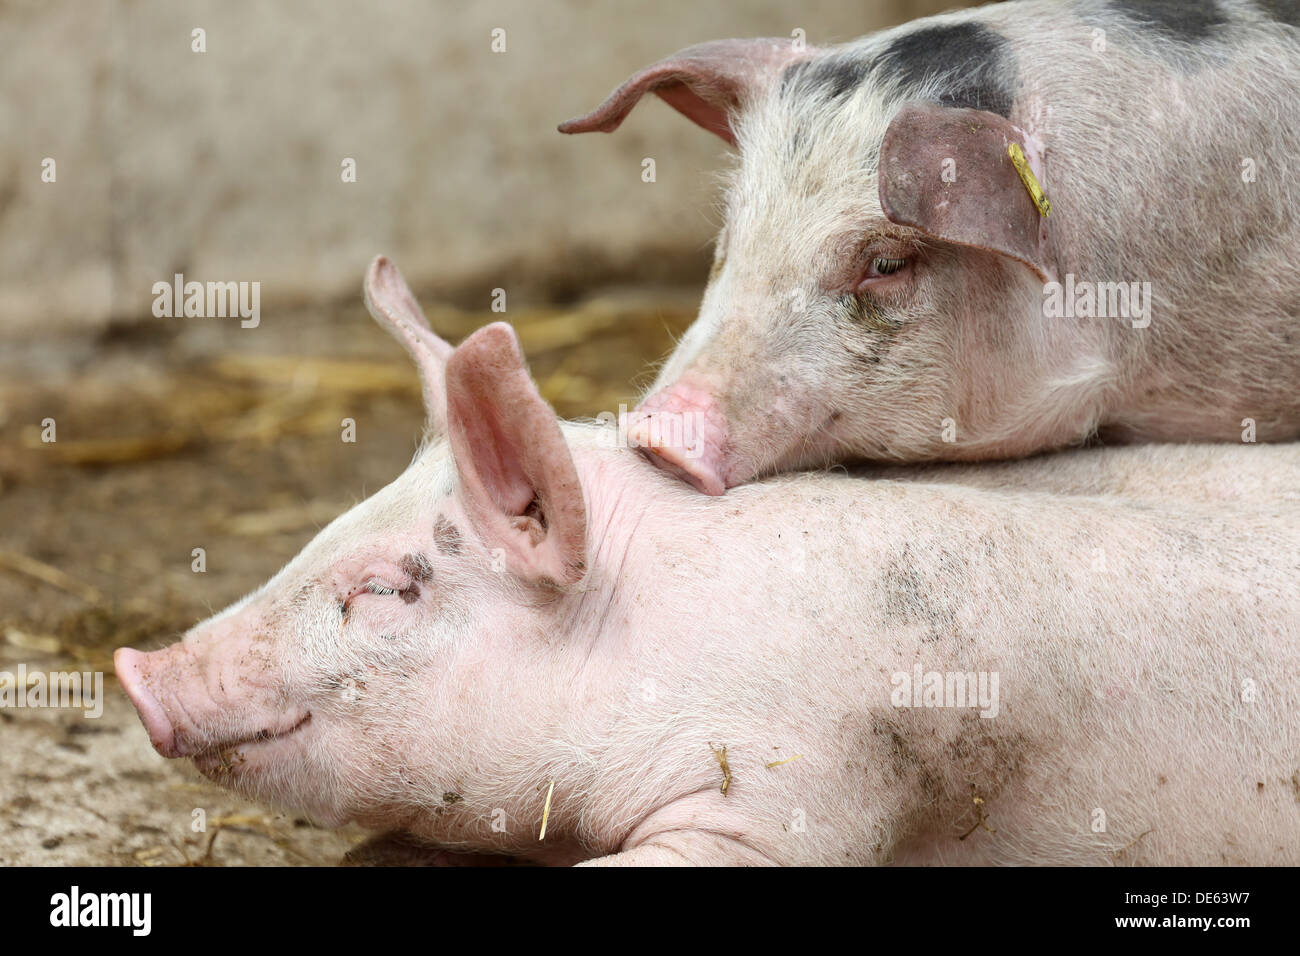 Resplendent village, Germany, domestic pigs - Stock Image